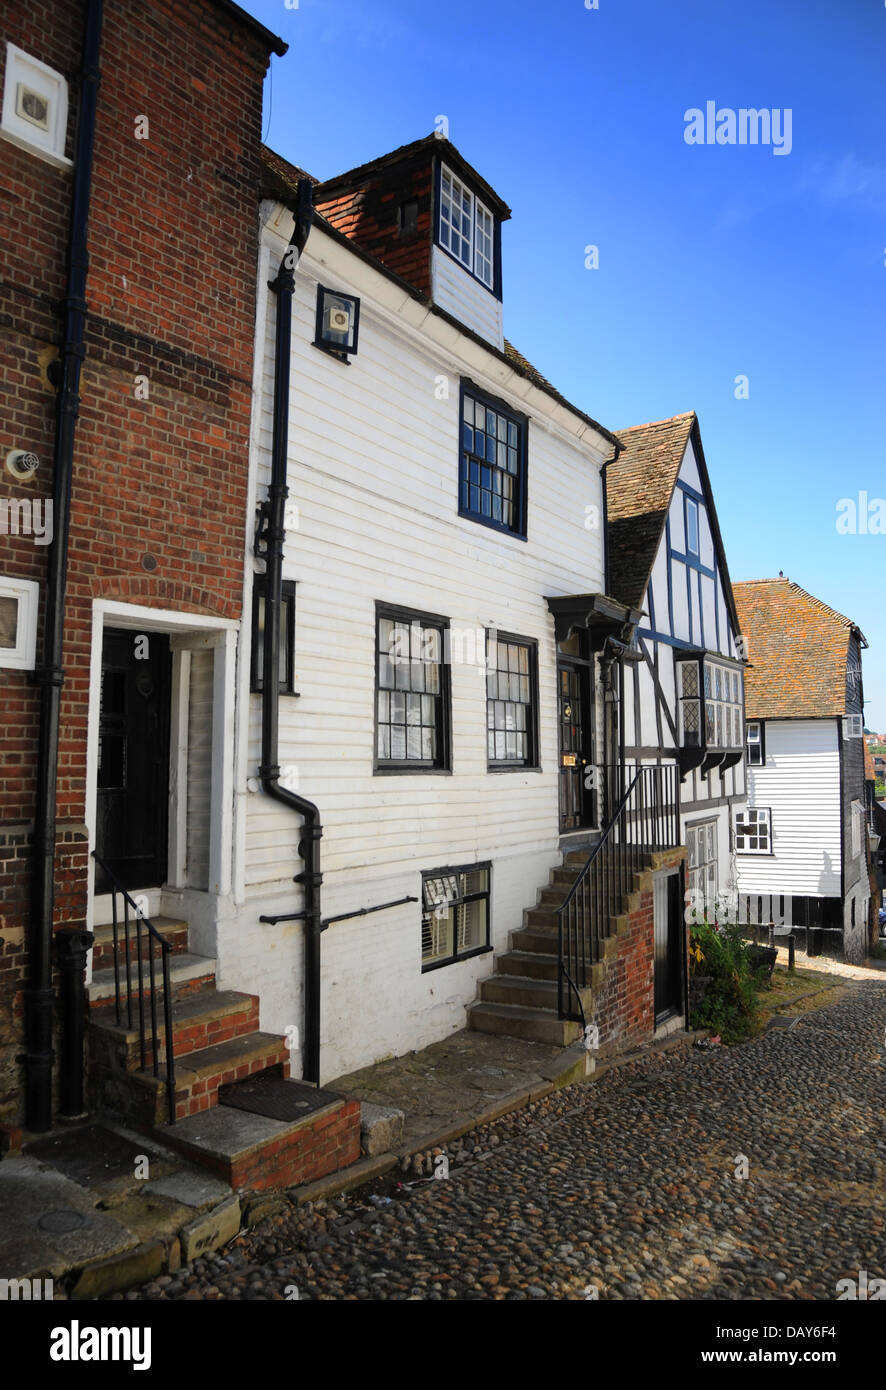 The stunning architecture and beauty of old England. Rye, Sussex. - Stock Image